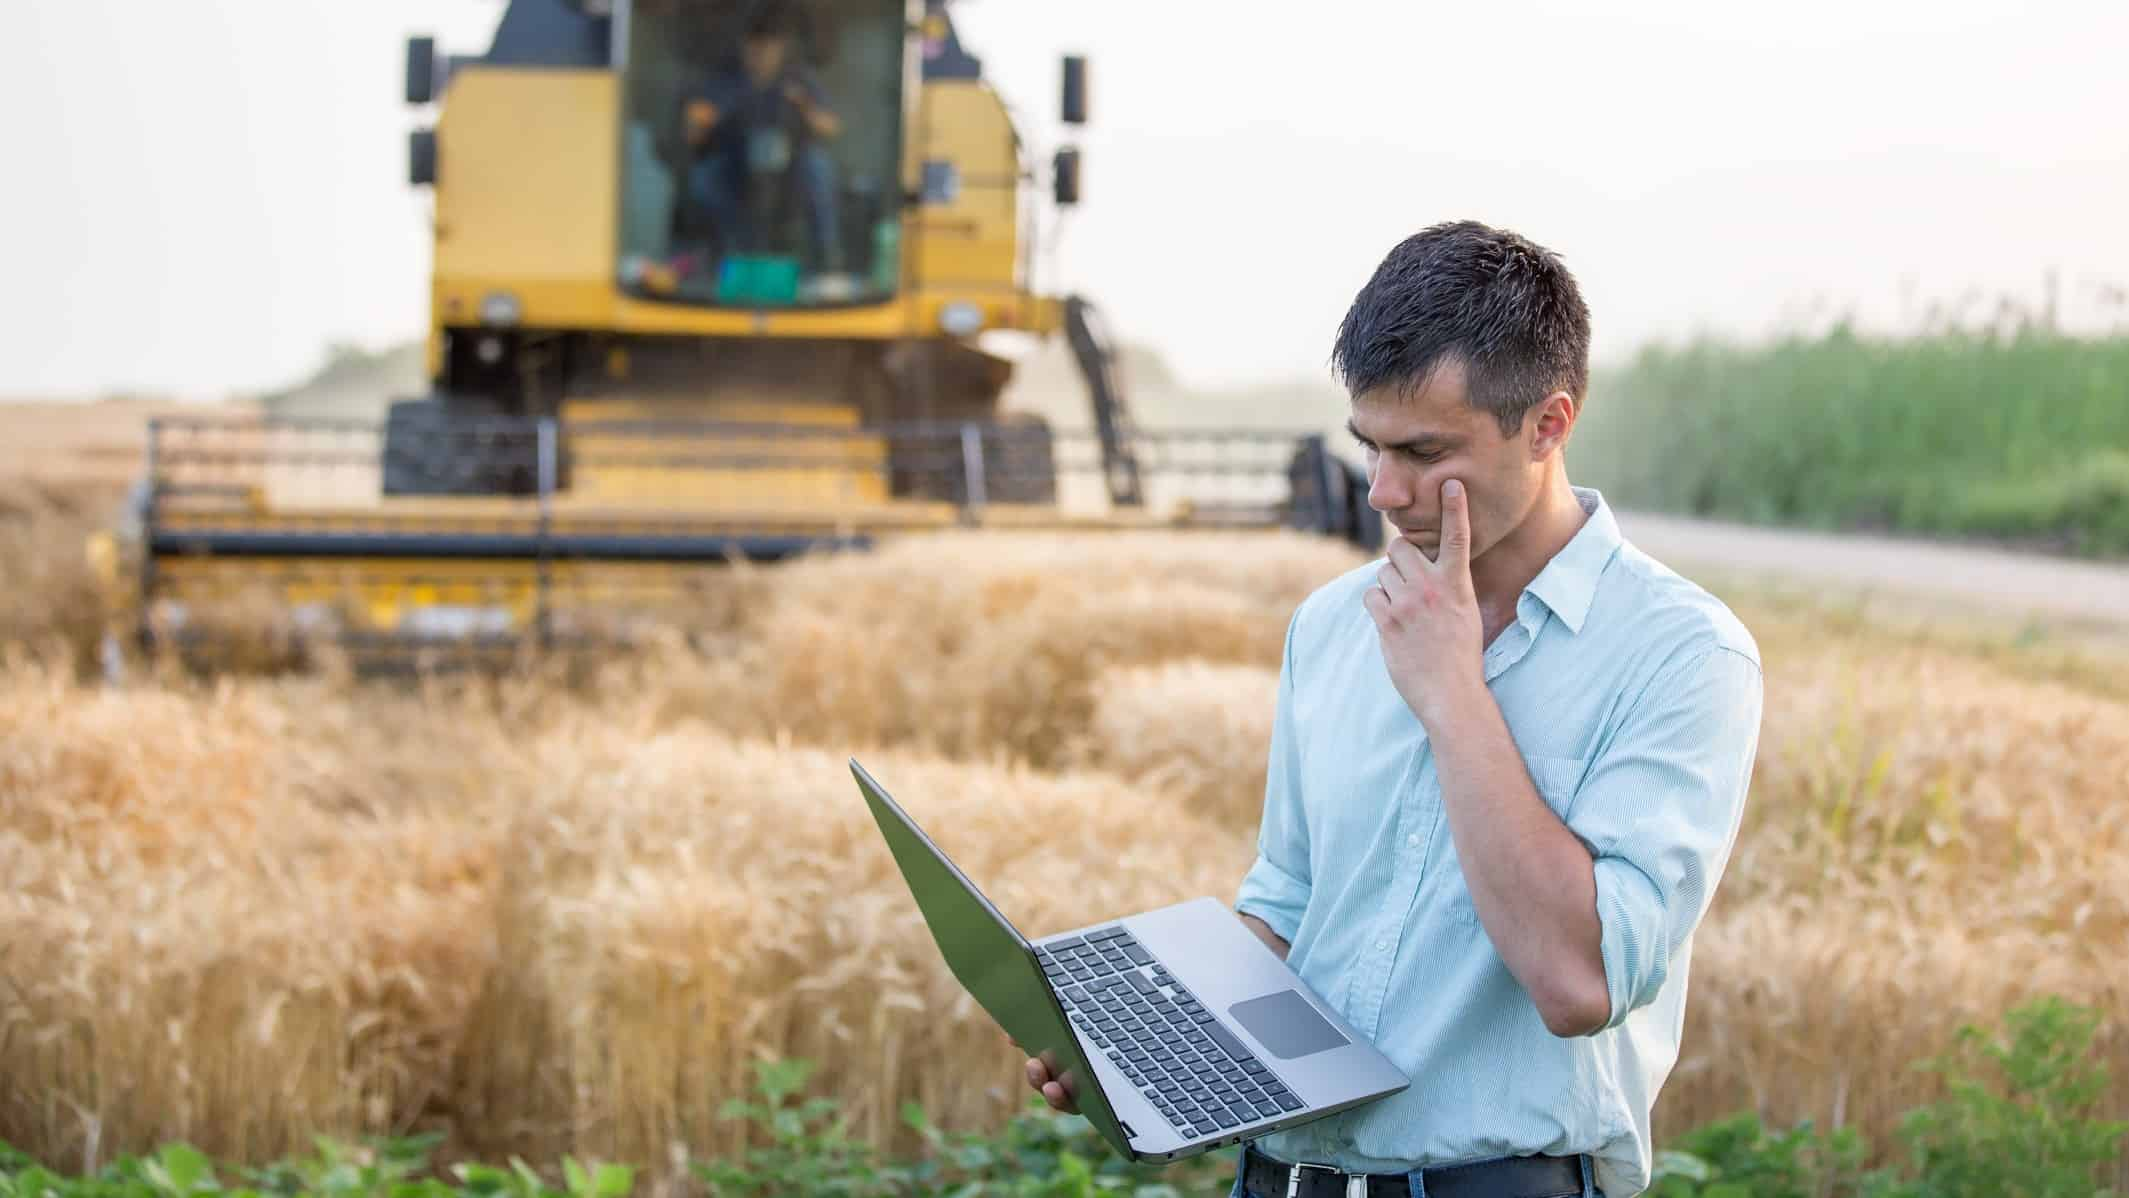 worried famer looks at his computer in front of a harvester, indicating poor prices on the share market